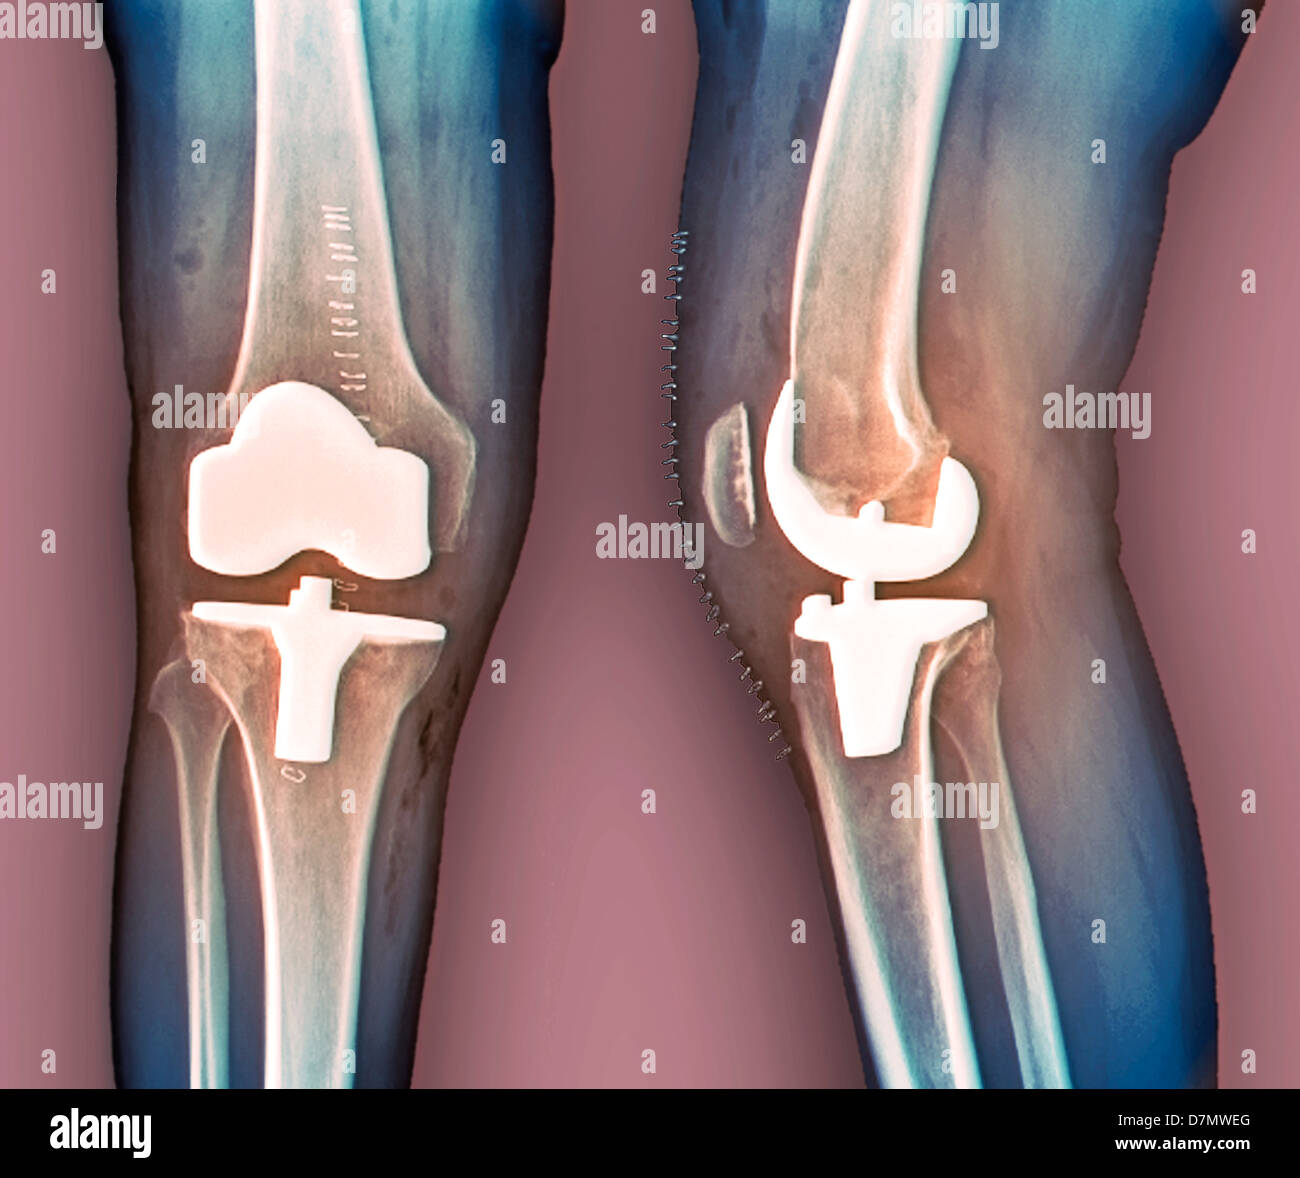 Total knee replacement, X-rays - Stock Image